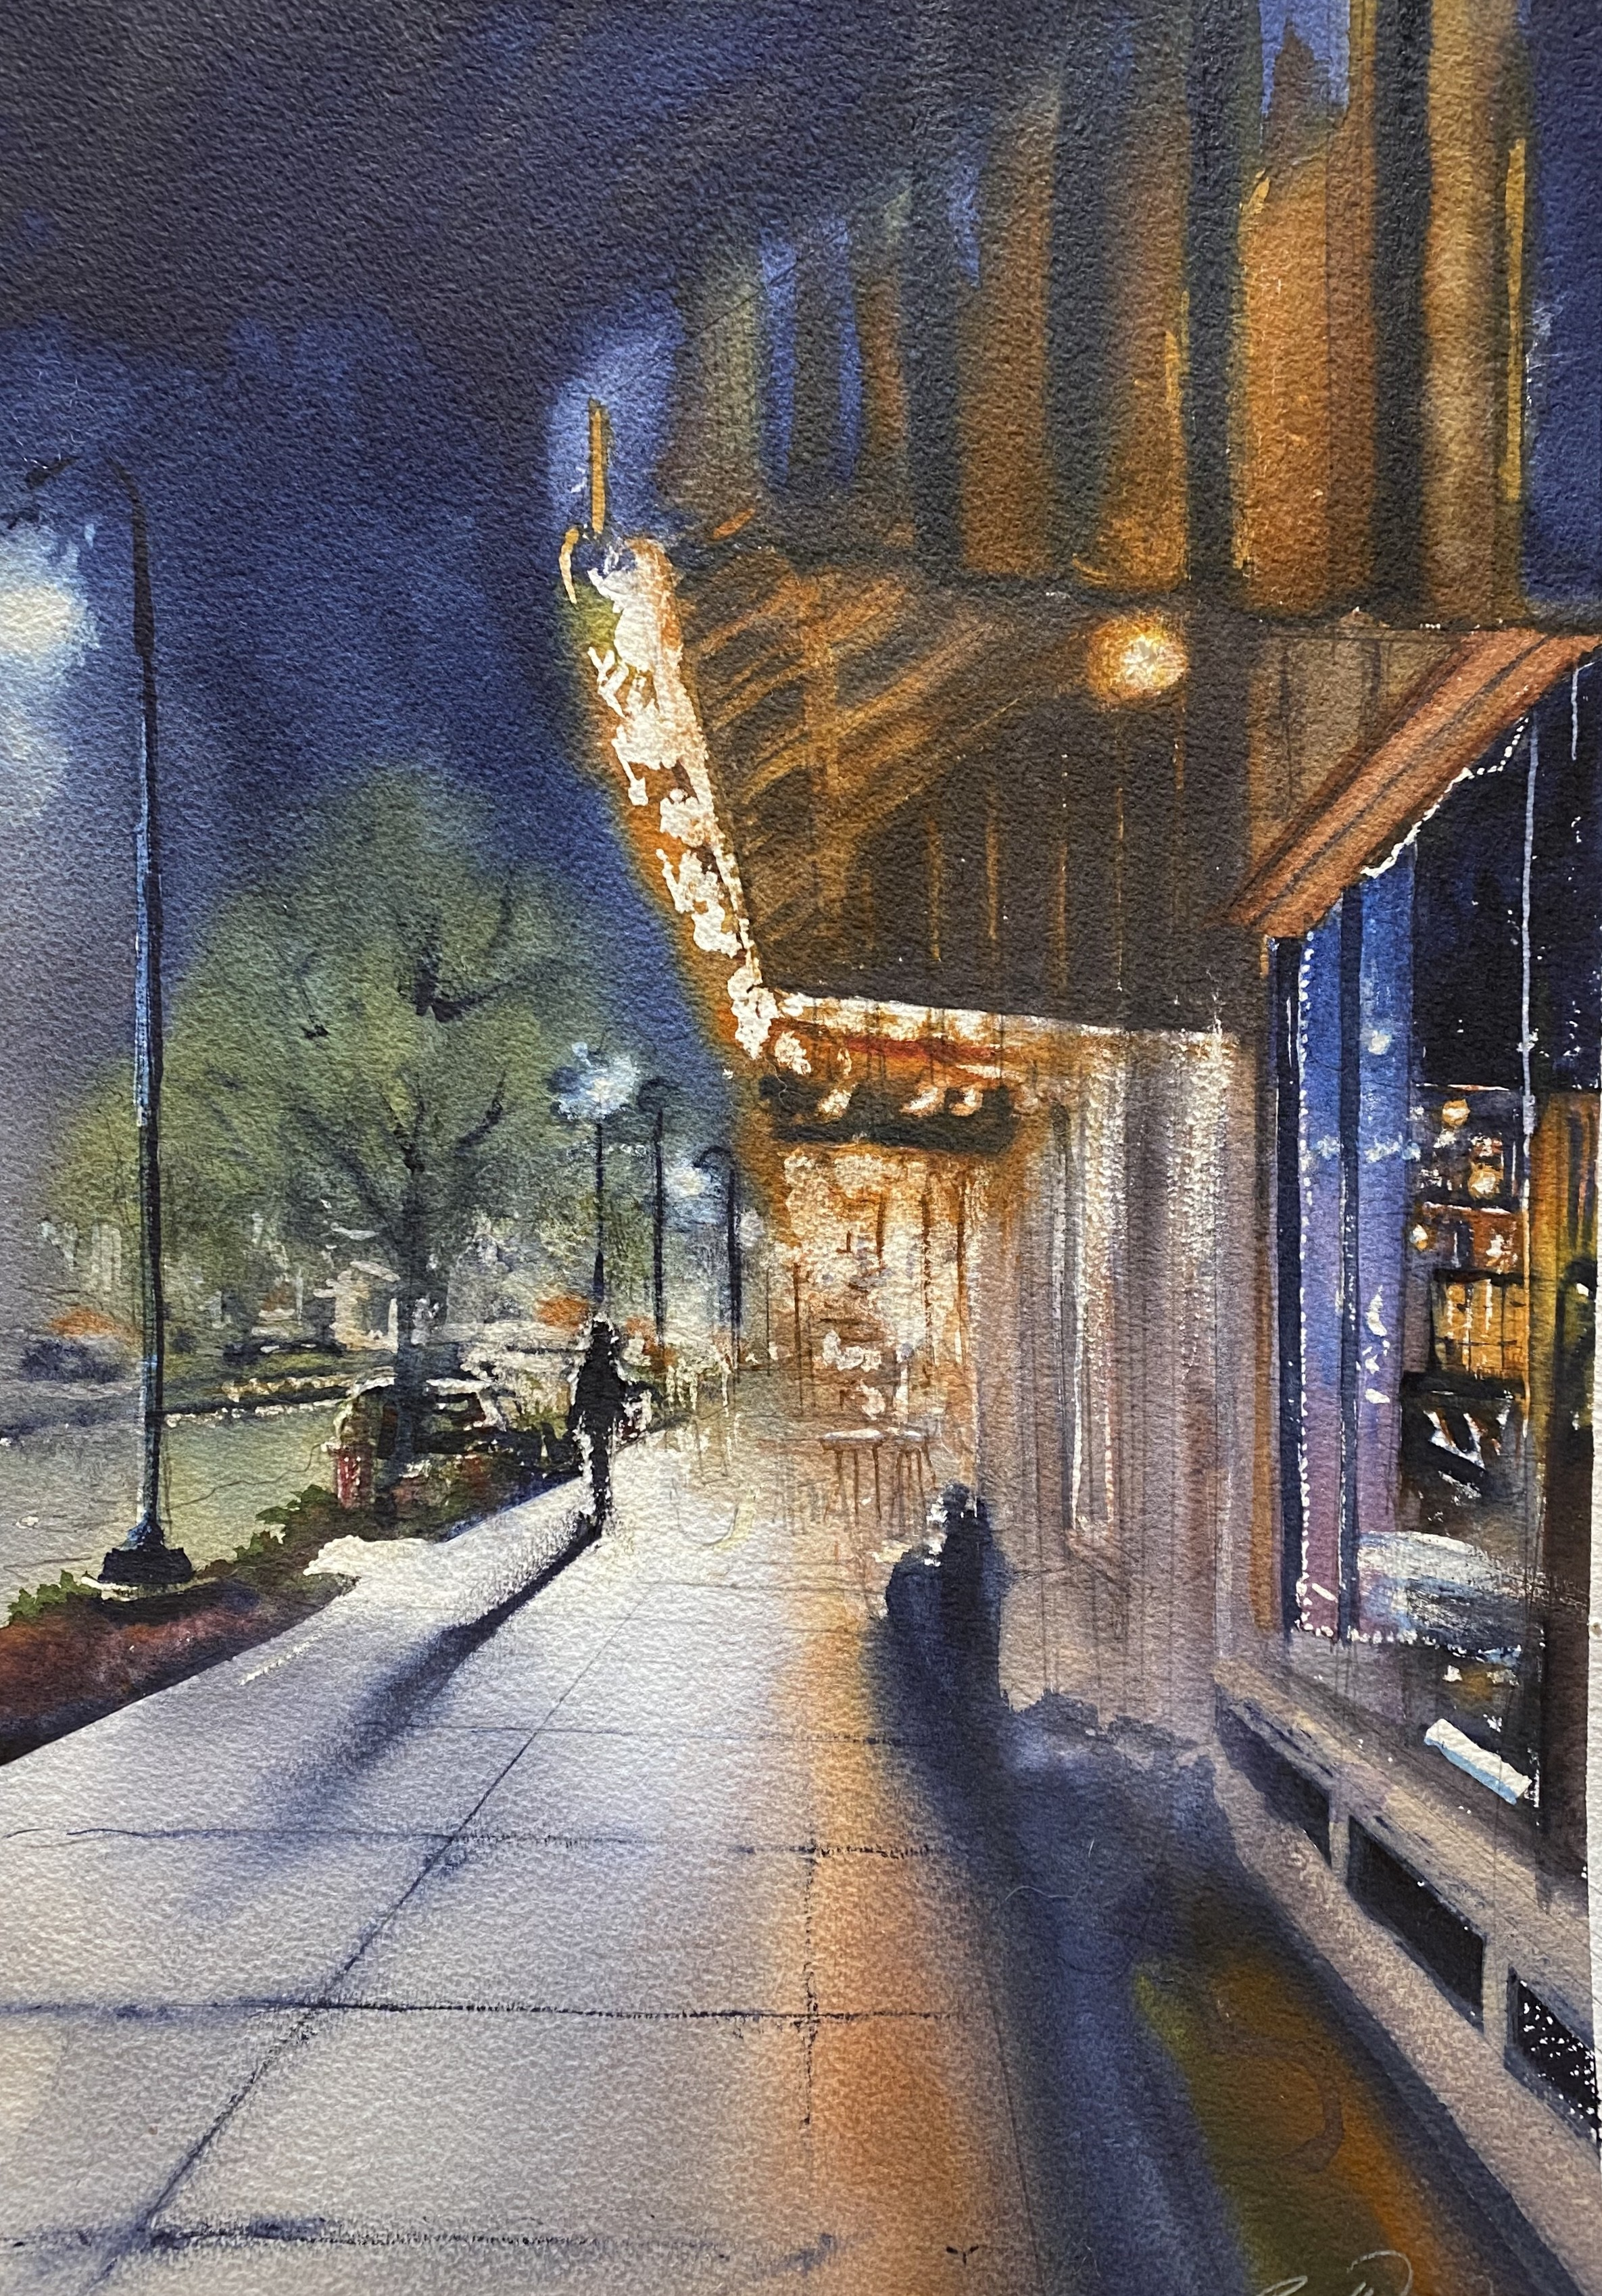 Christopher Wynn_watercolorist_ painter_contemporary artist_watercoloring painting_cityscapes_teacher_published artist_award